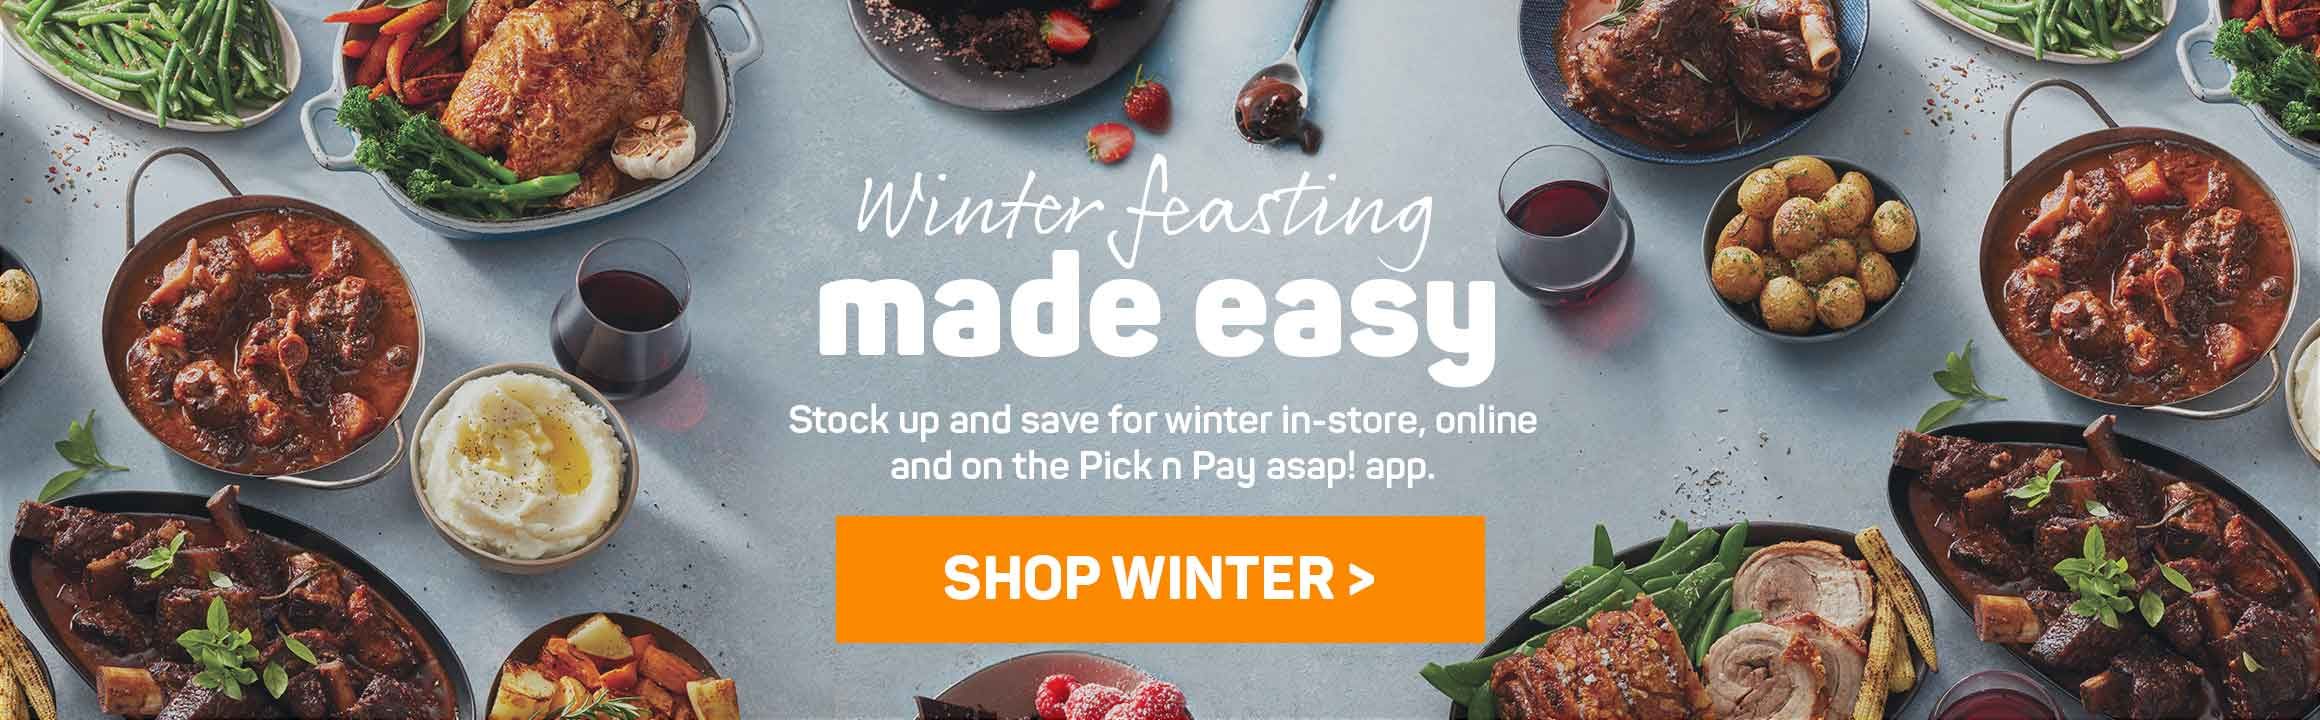 Winter feasting made easy. Shop winter!